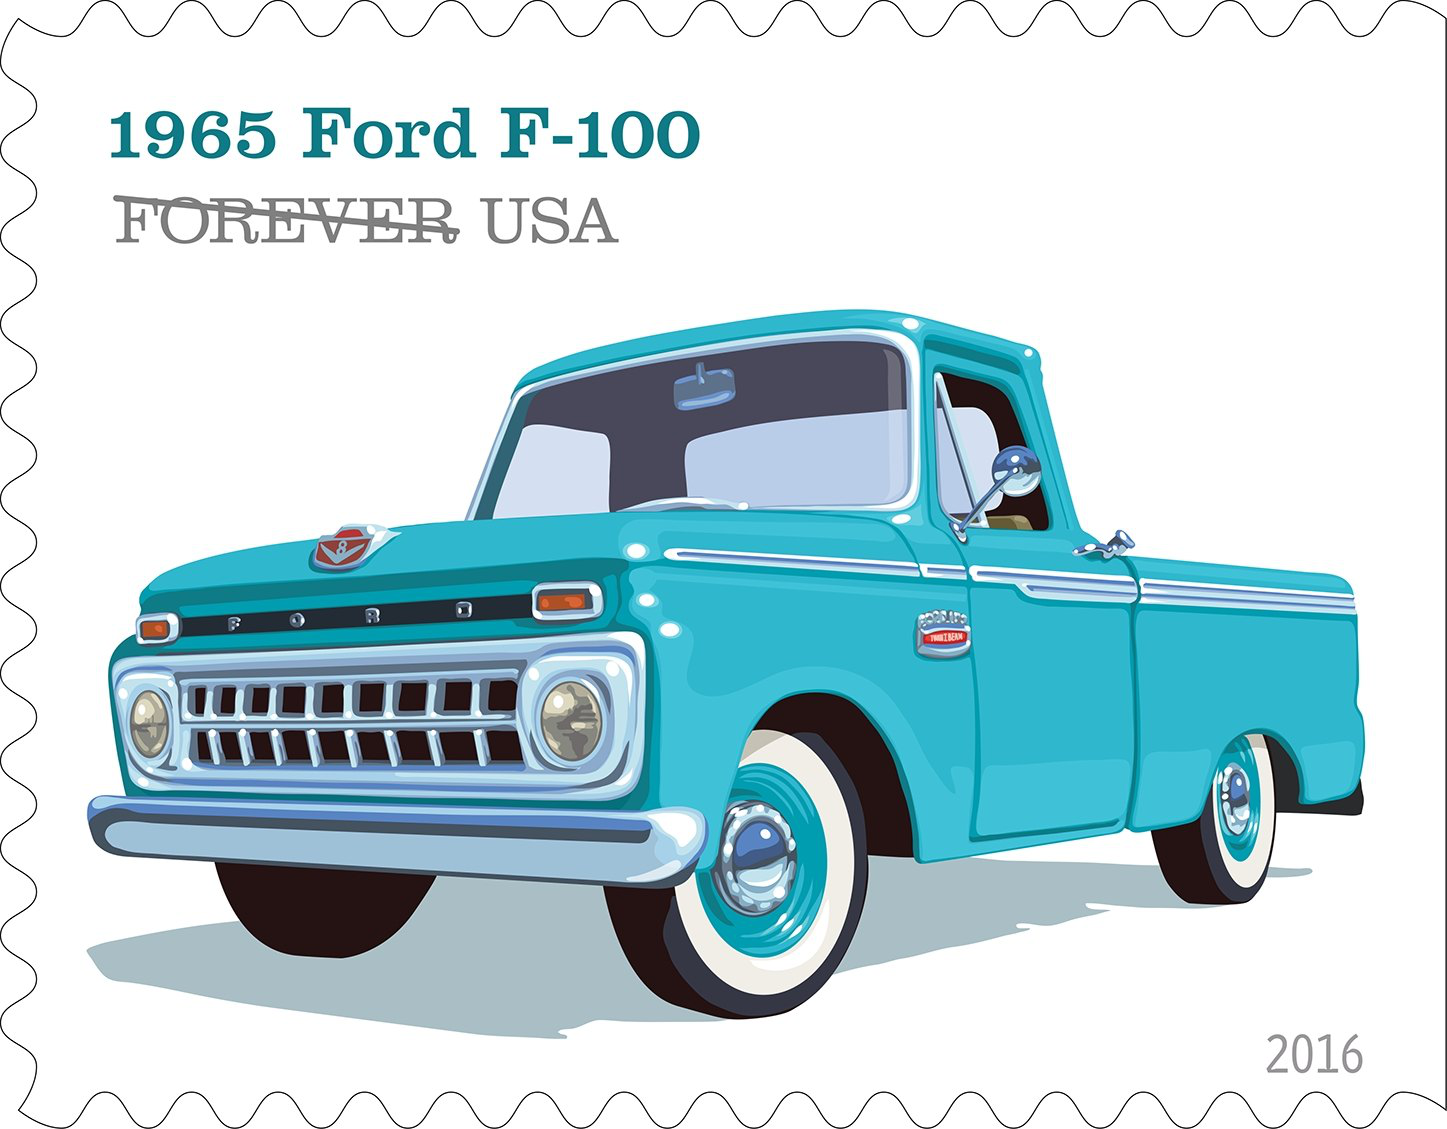 1947 International Truck >> U.S. Postal Service unveils truck stamp designs | Overdrive - Owner Operators Trucking Magazine